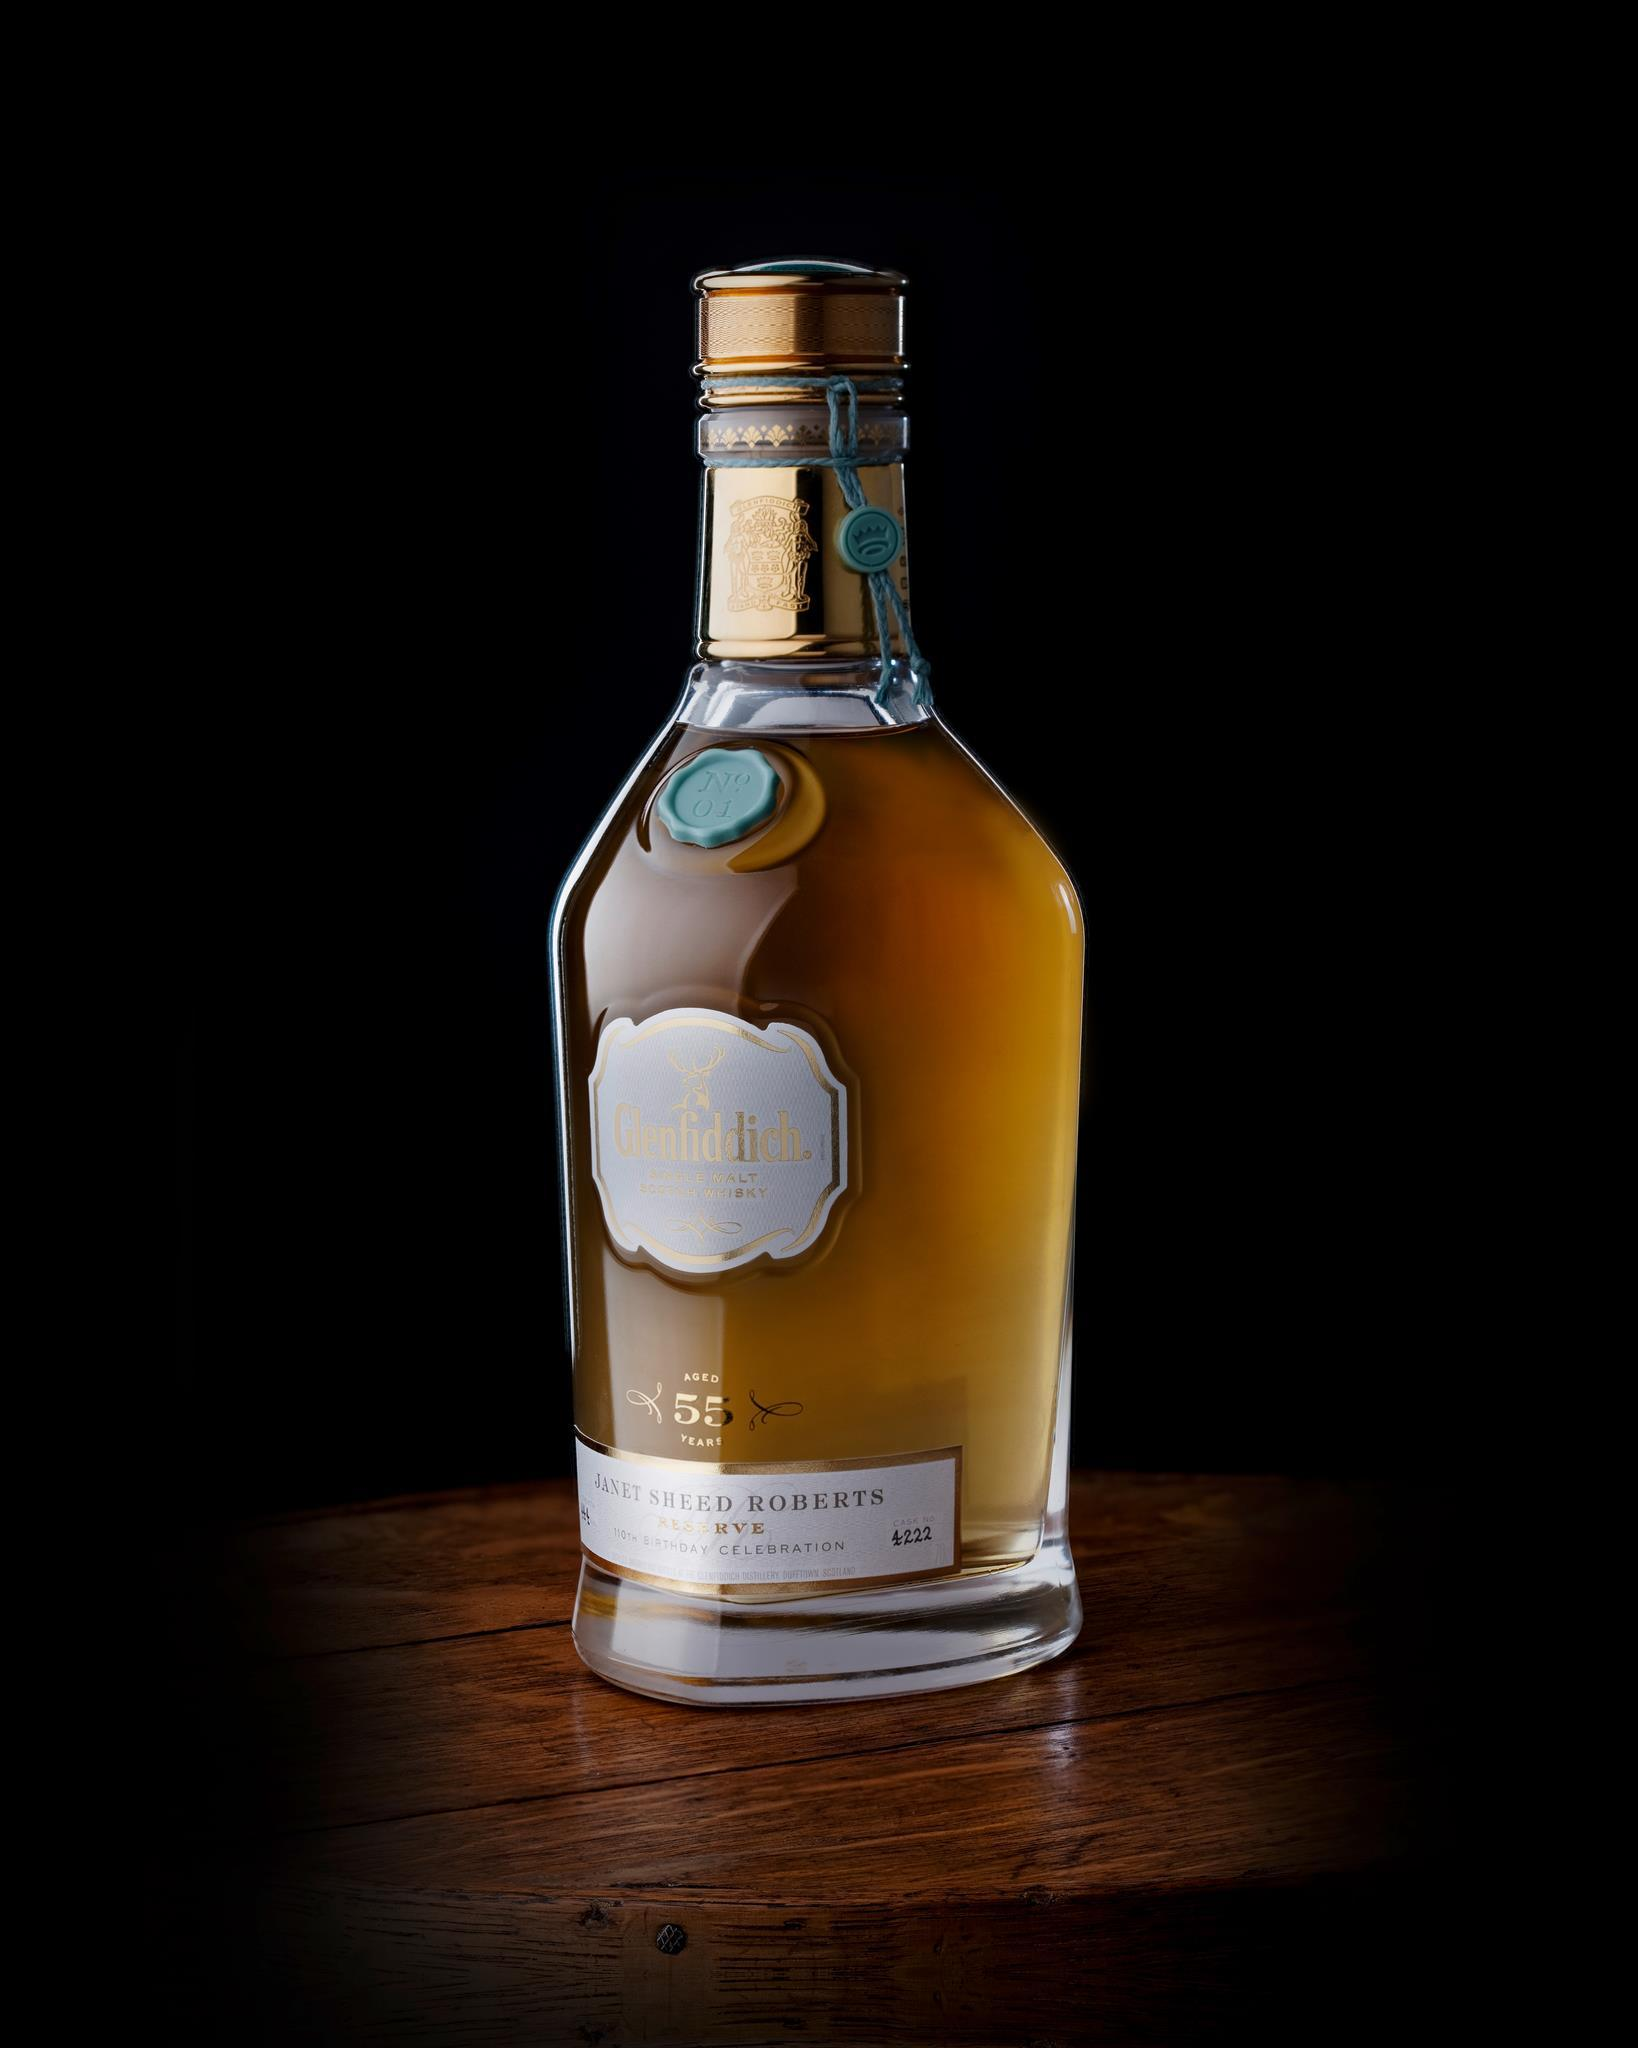 glenfiddich 1955 whisky auction